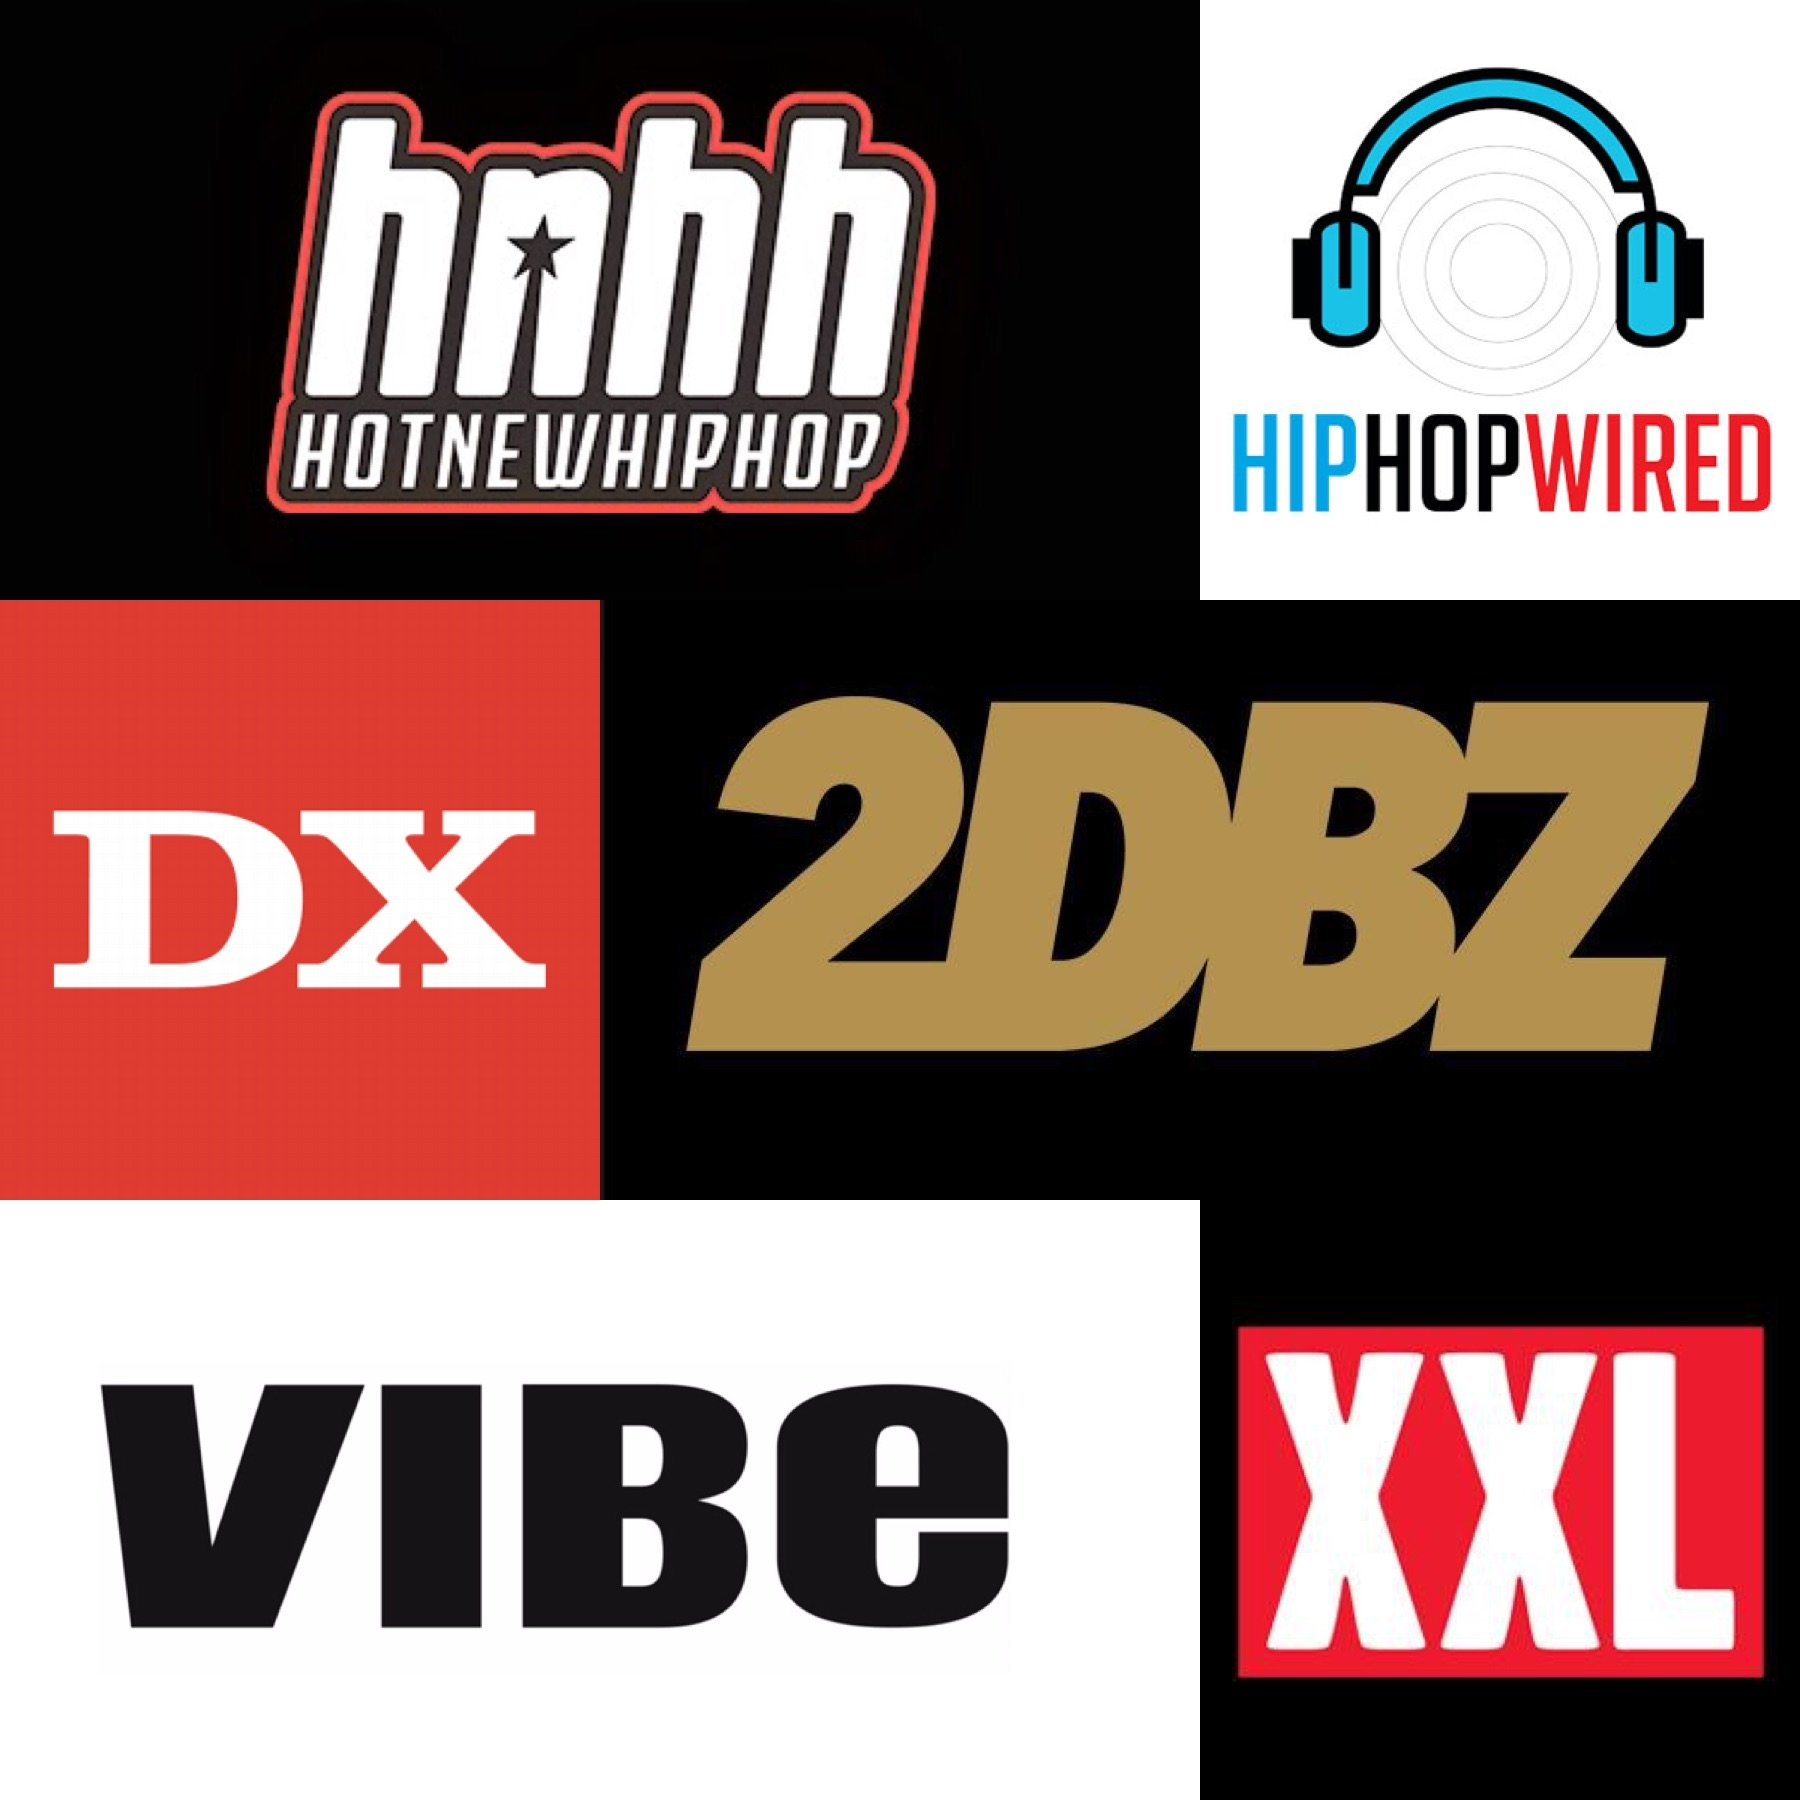 5 Reasons Why The Hip Hop Blogs Aren't Answering You